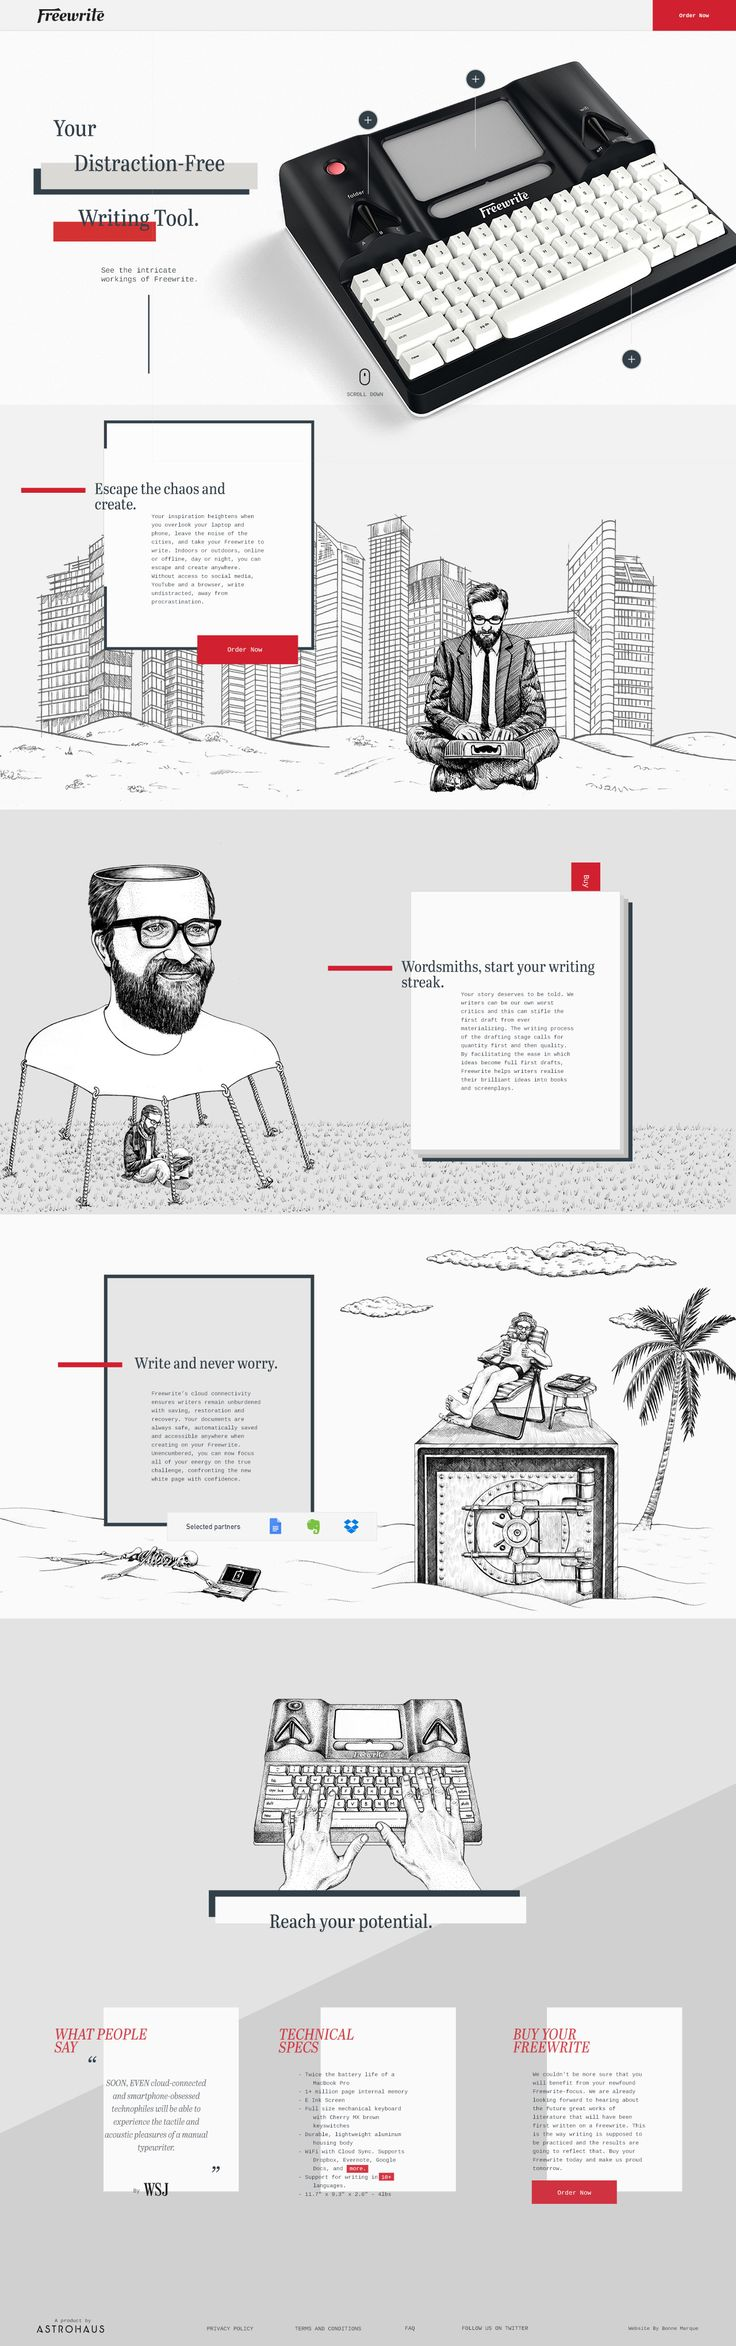 "Awesome Parallax scrolling One Pager filled with fun custom illustrations and animations for a new ""smart typewriter"" product called 'Freewrite'."